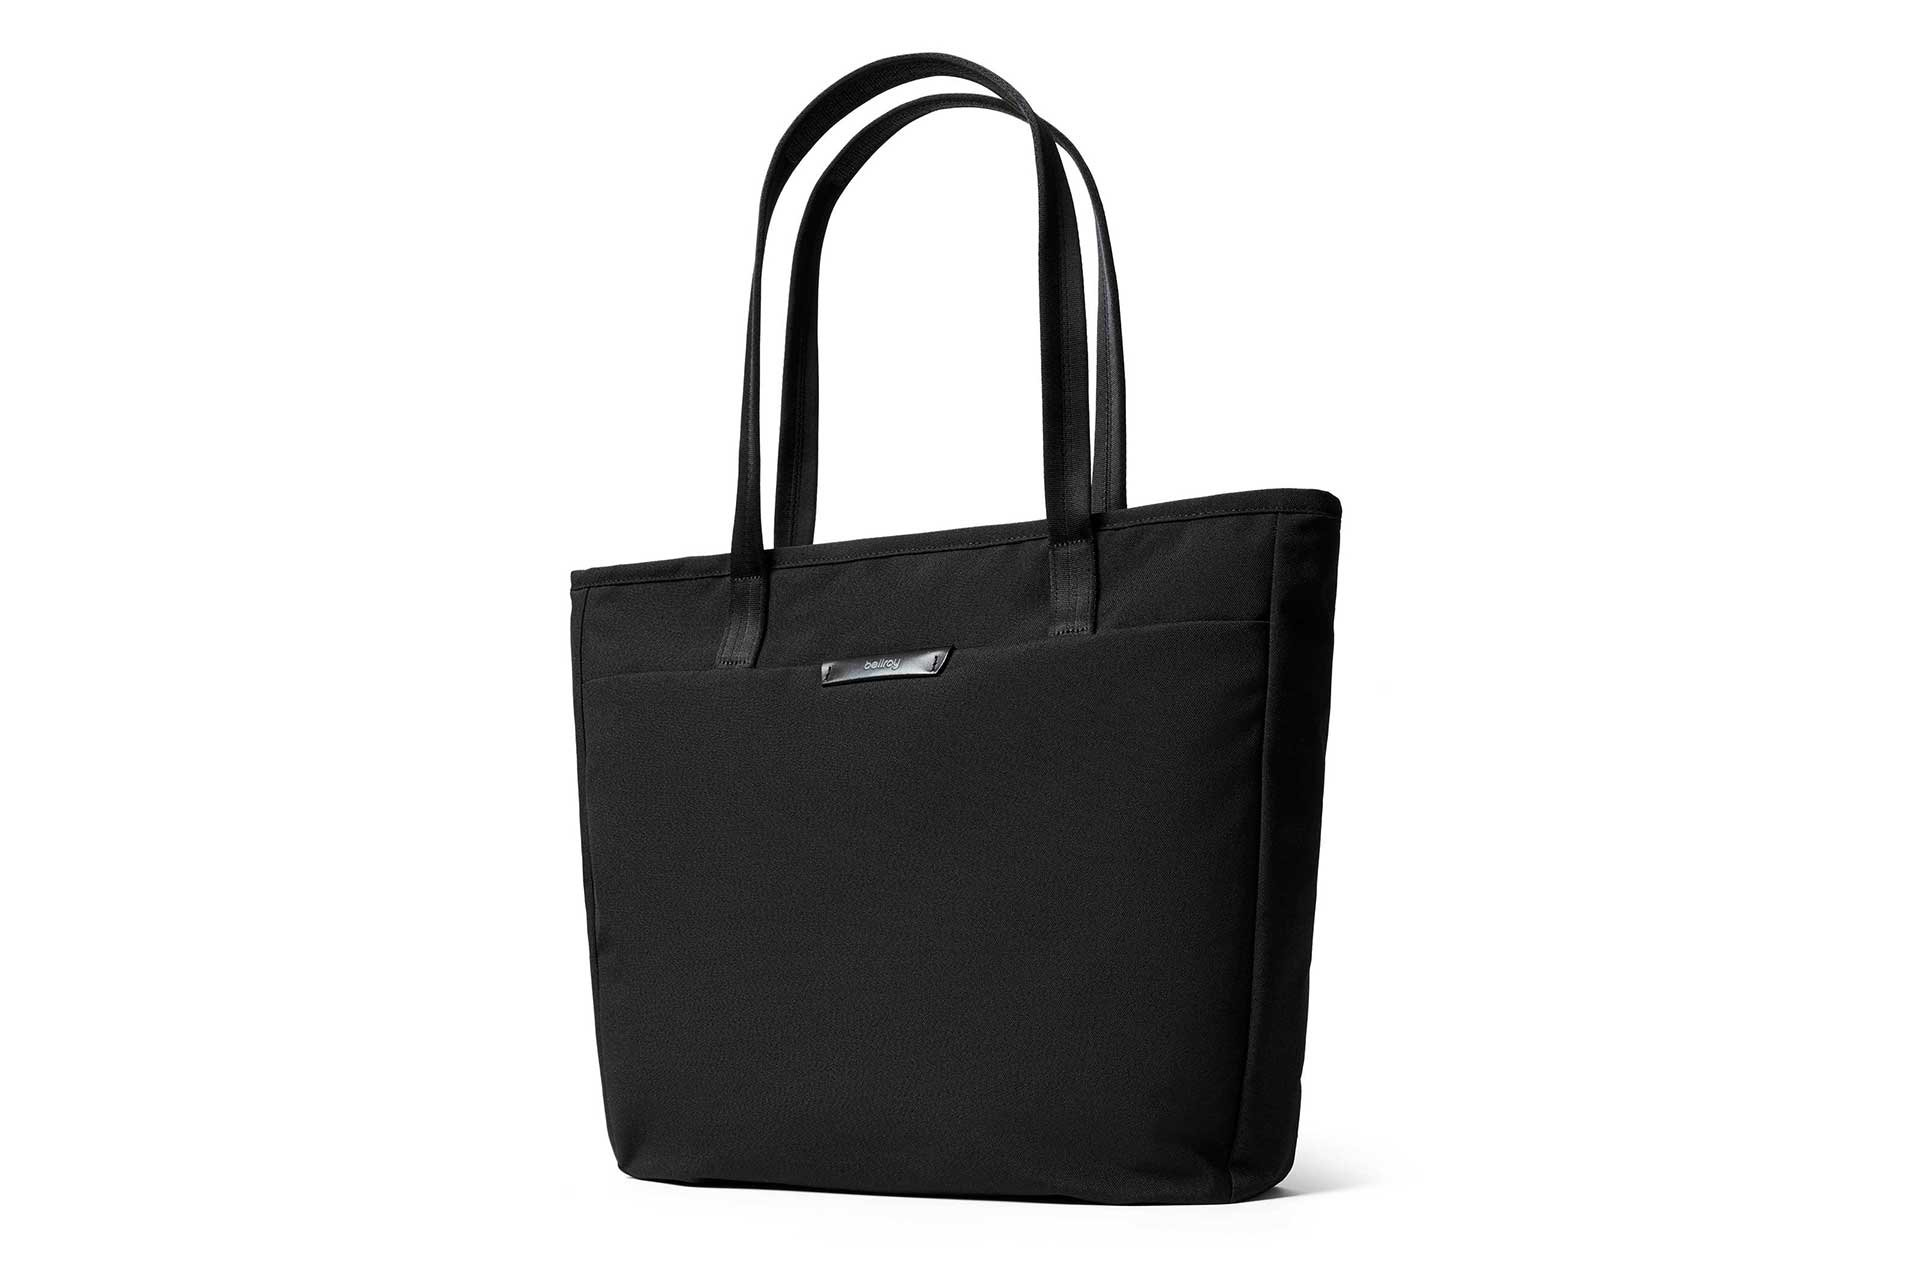 """Bellroy Tokyo Tote, water-resistant woven tote bag (13"""" laptop, tablet, notes, cables, drink bottle, spare clothes, everyday essentials) - Black"""